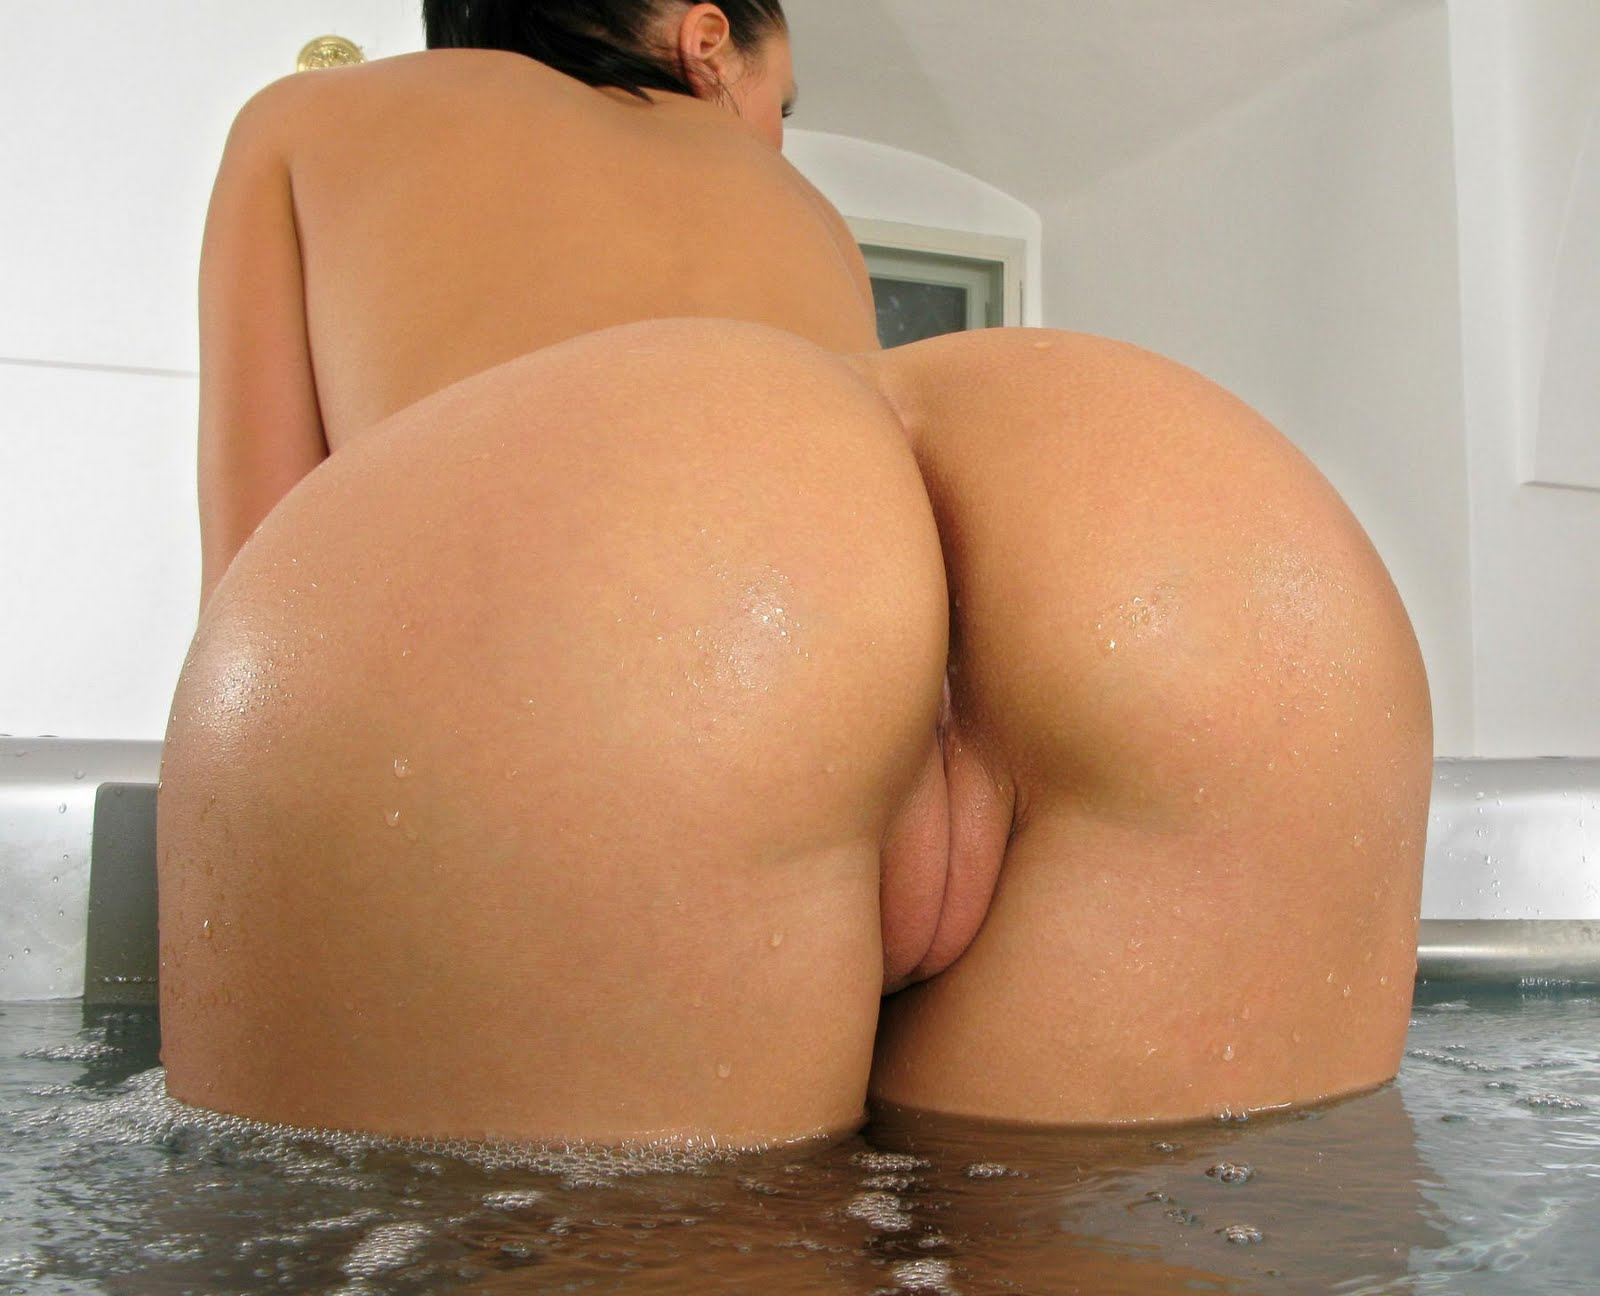 hd porn big ass